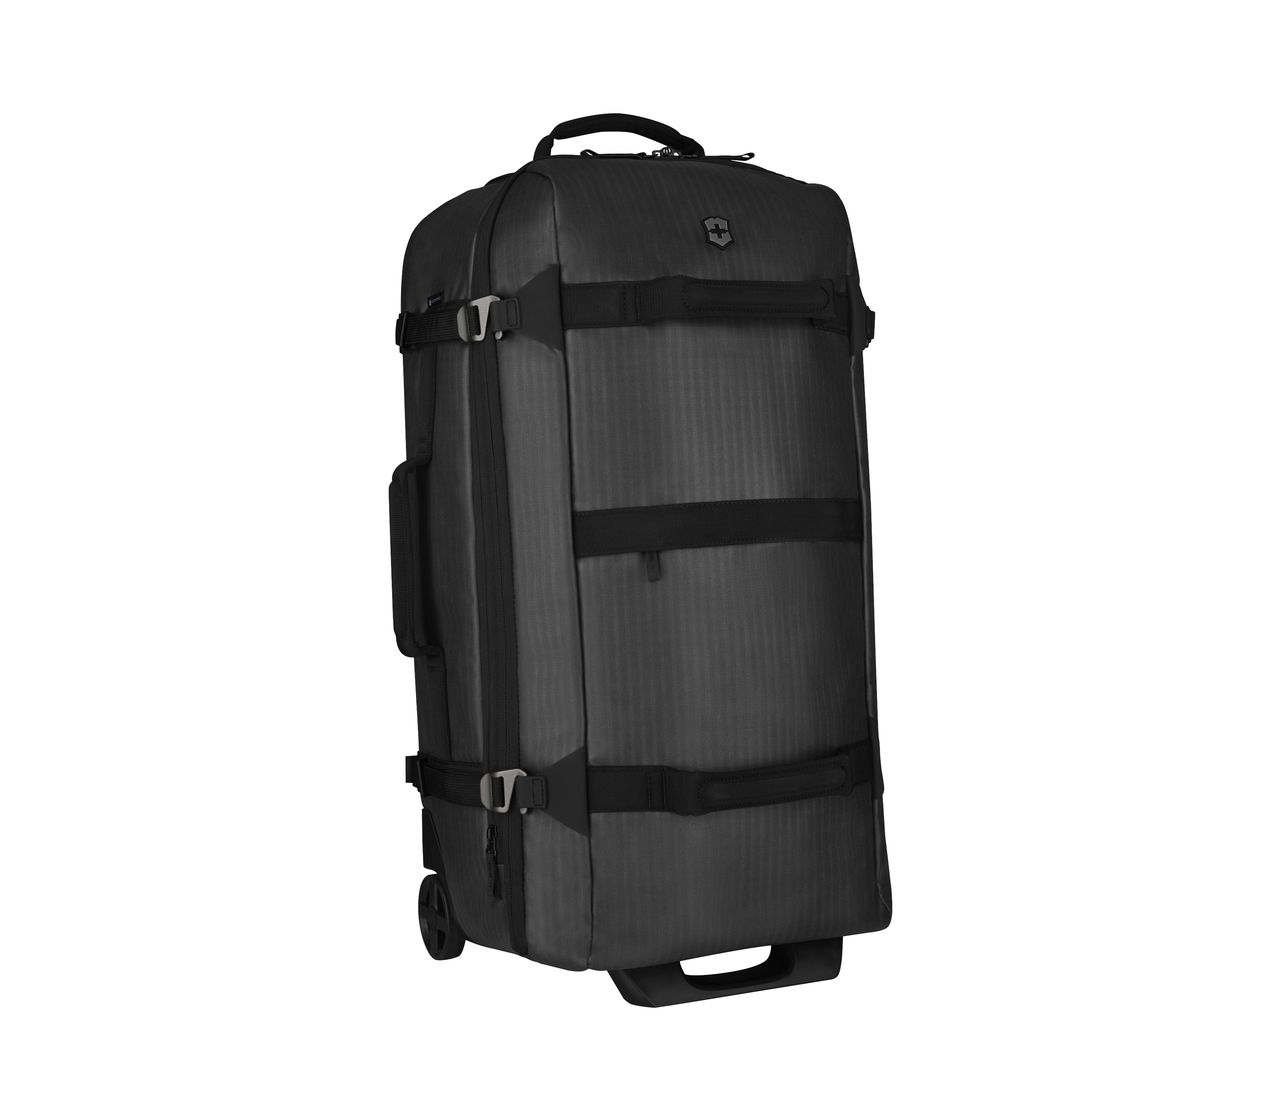 Vx Touring Expandable Large Duffel-606608